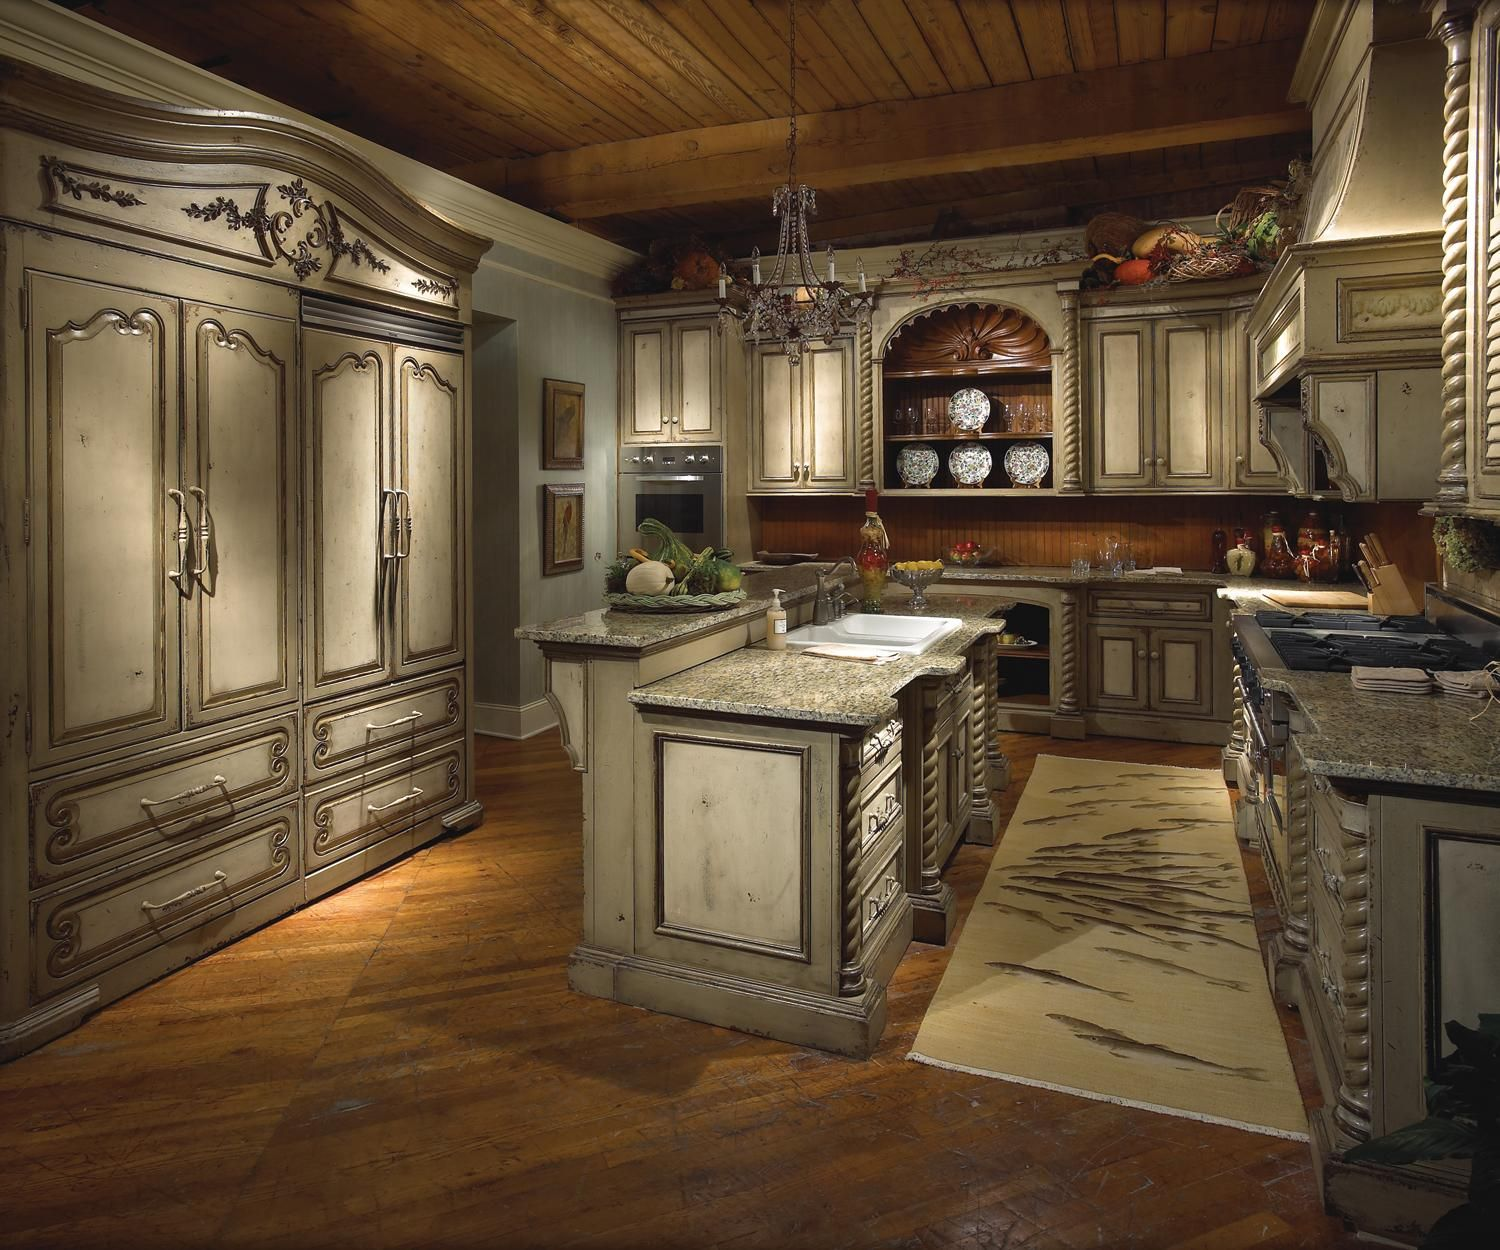 17 Best Ideas About Tuscan Style On Pinterest: Tuscan Kitchen Decorating Ideas Photos